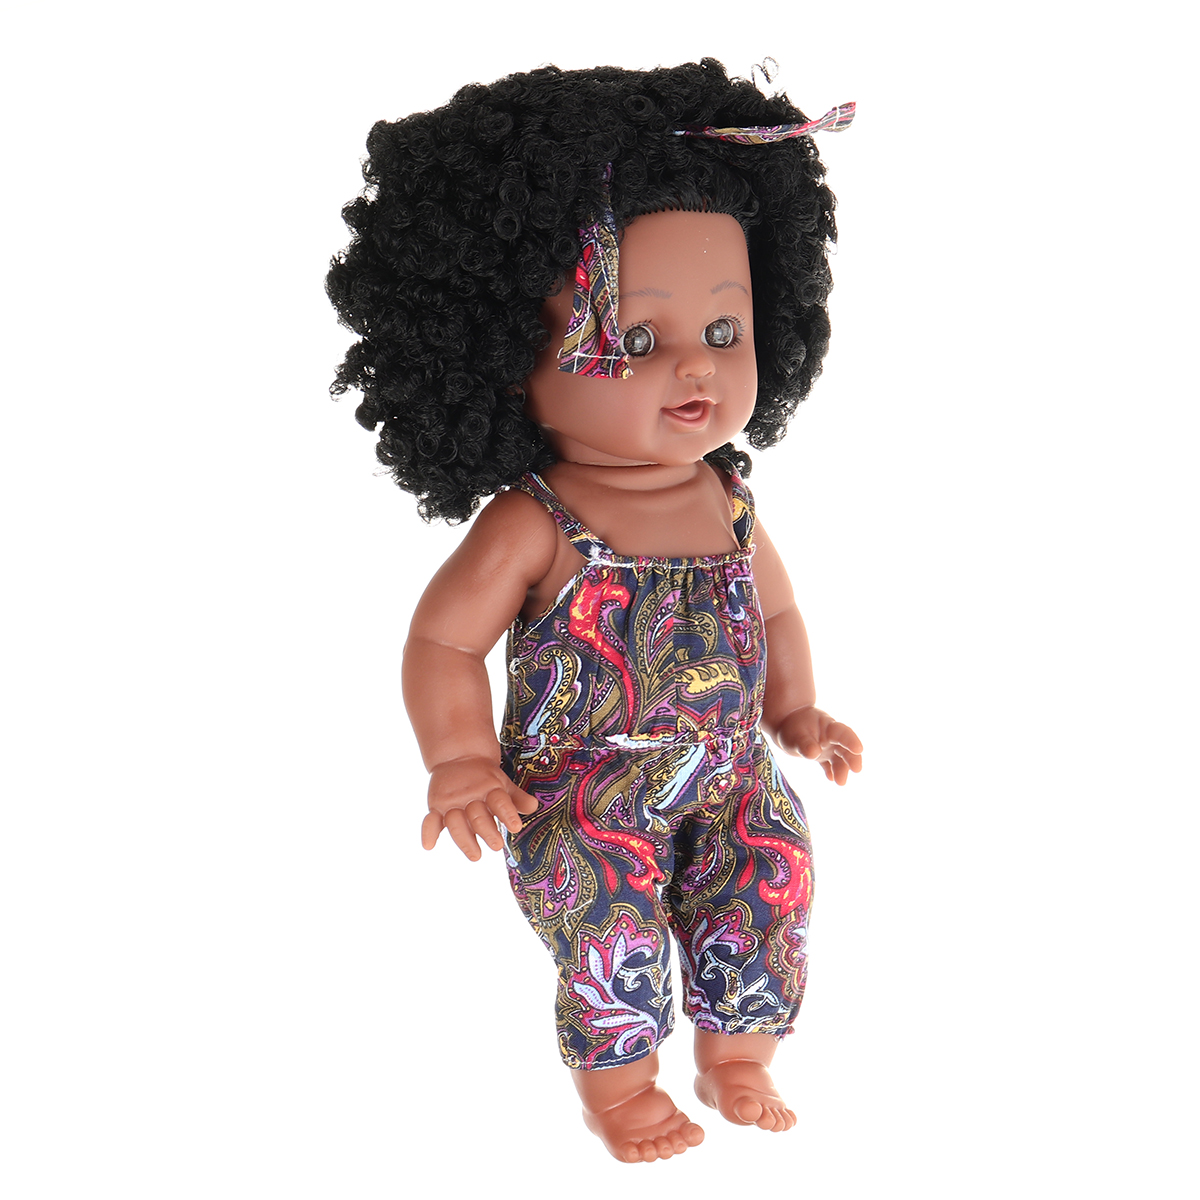 12Inch Soft Silicone Vinyl PVC Black Baby Fashion Play Doll Rotate 360° African Girl Perfect Reborn Doll Toy for Birthday Gift - Photo: 4